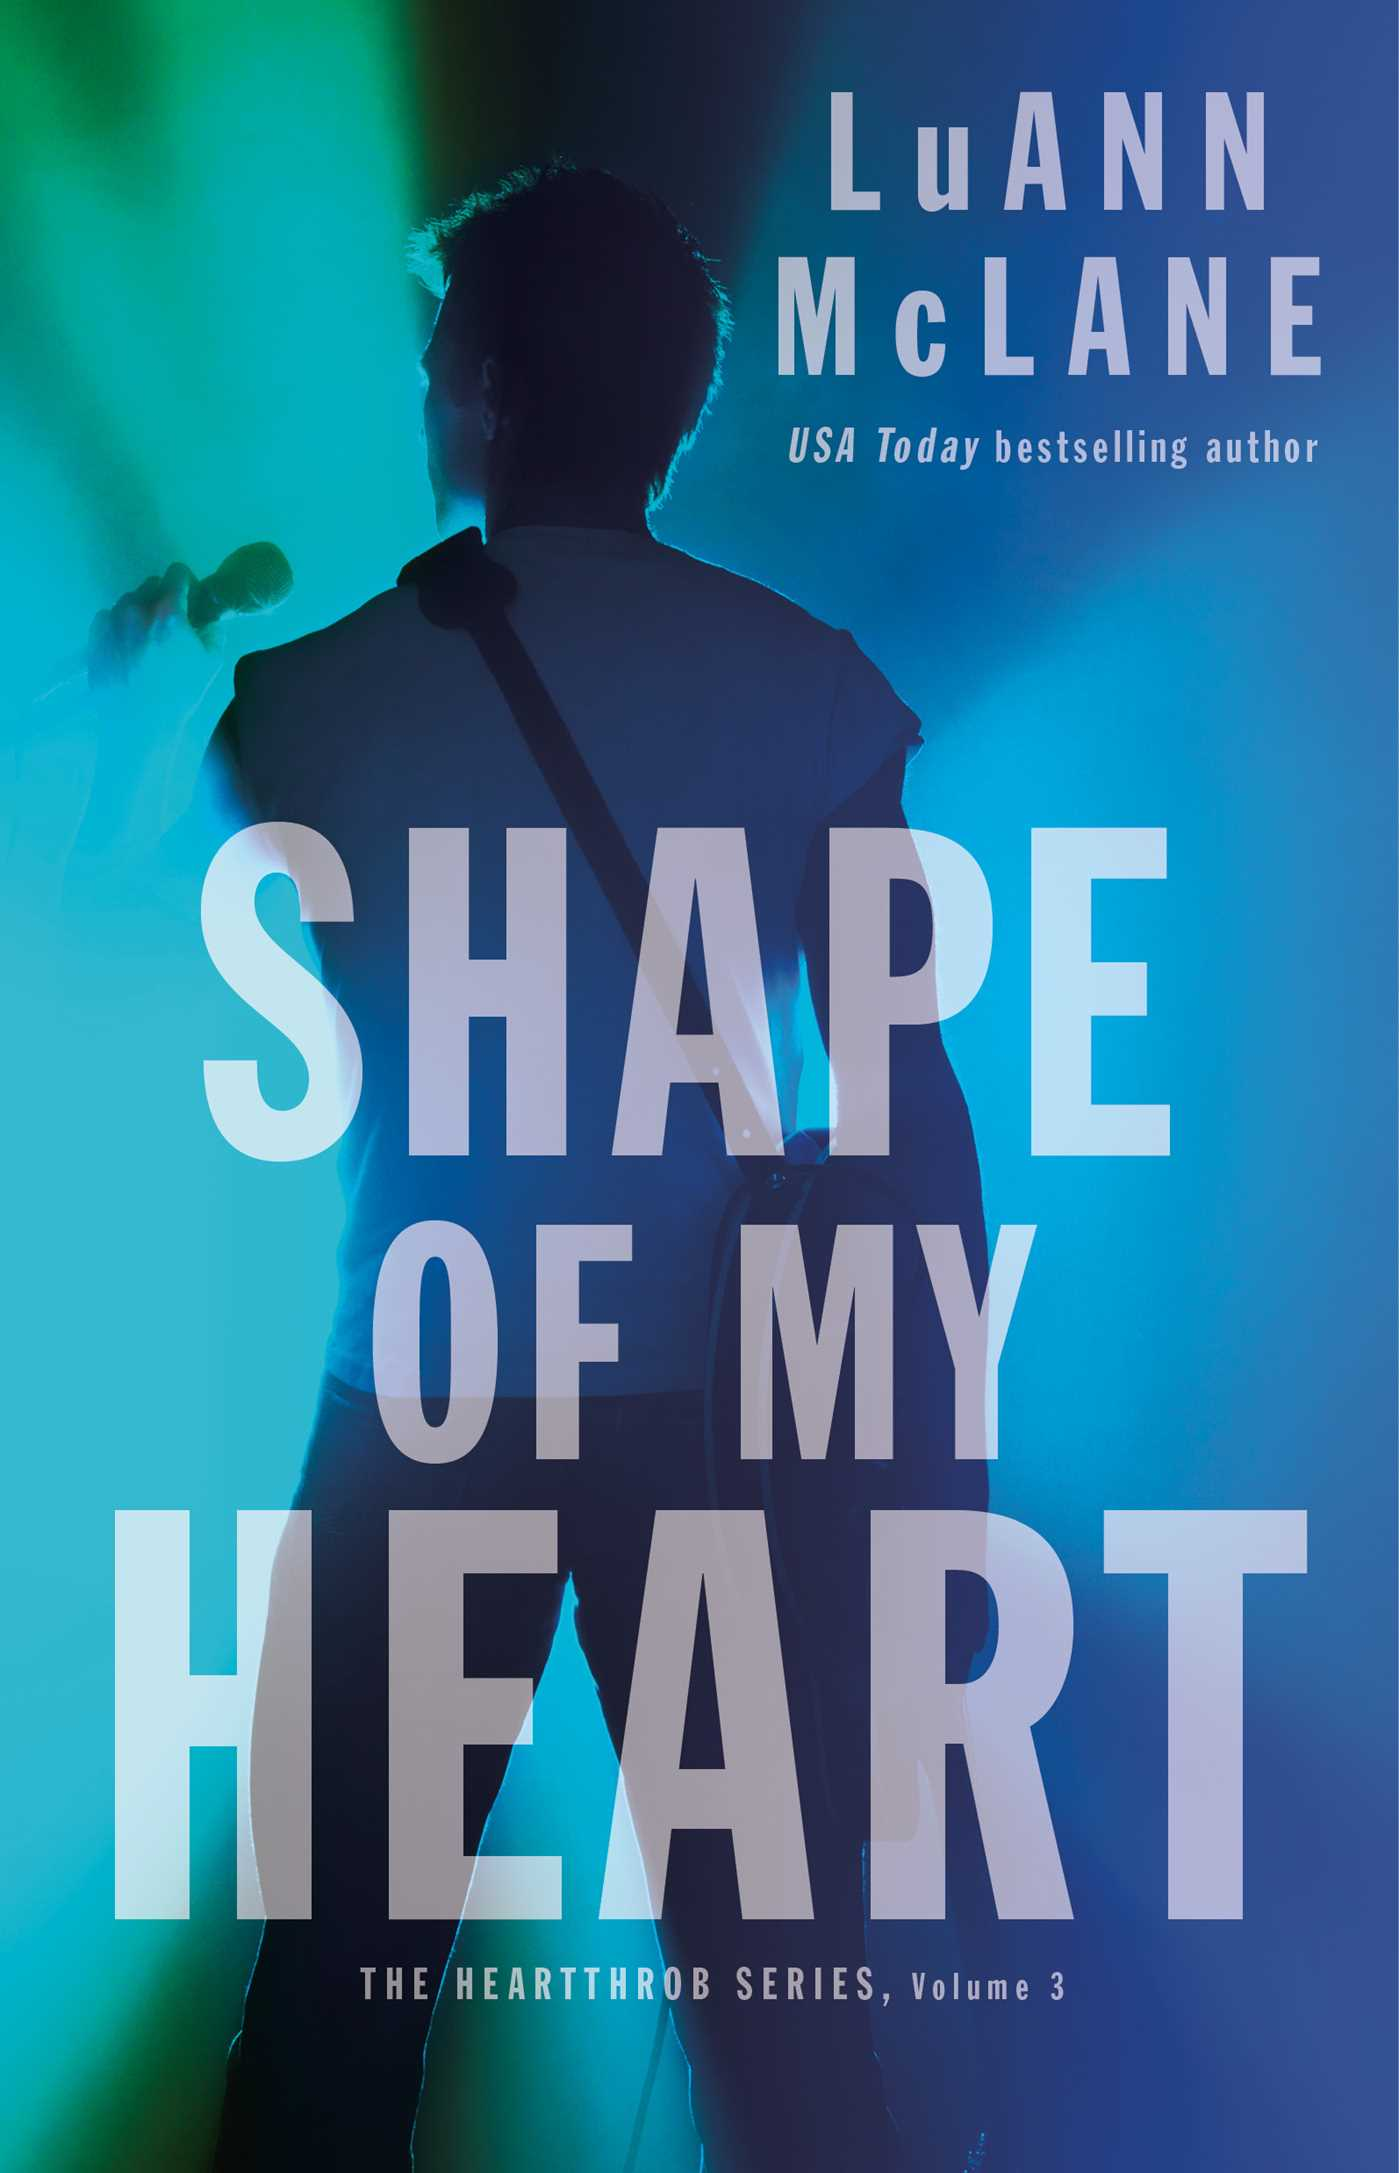 Shape of my heart 9781501172564 hr